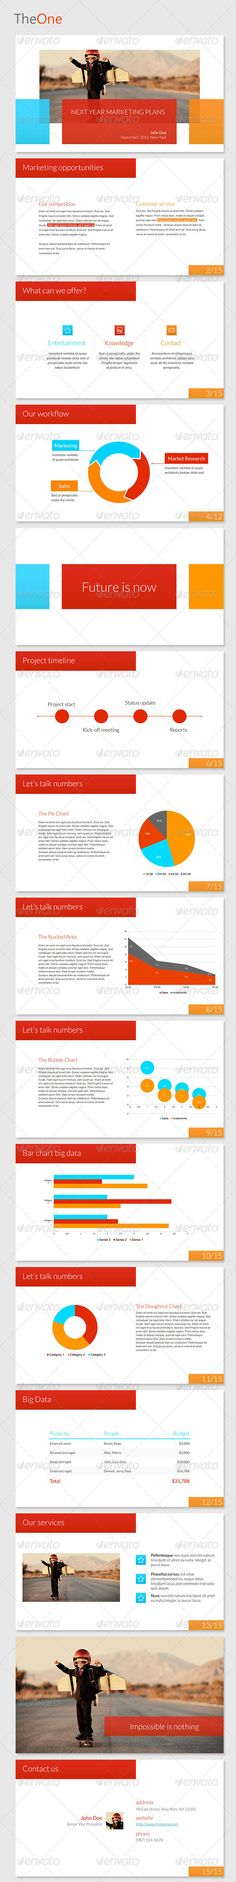 TheOne Powerpoint Template - GraphicRiver Item for Sale